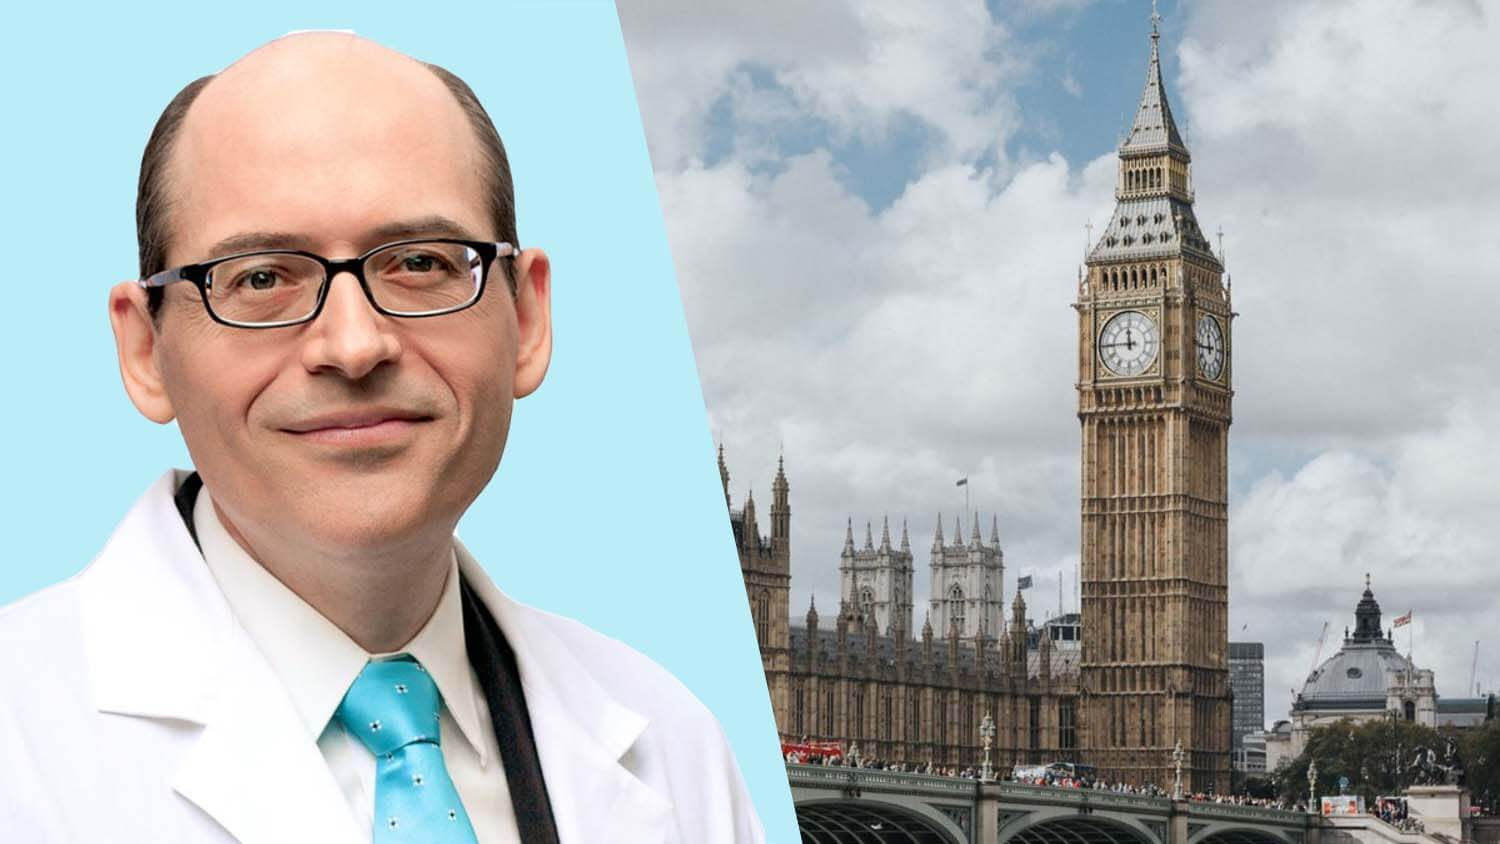 Vegan Doctor Michael Greger to Keynote London Nutrition Conference VegMed